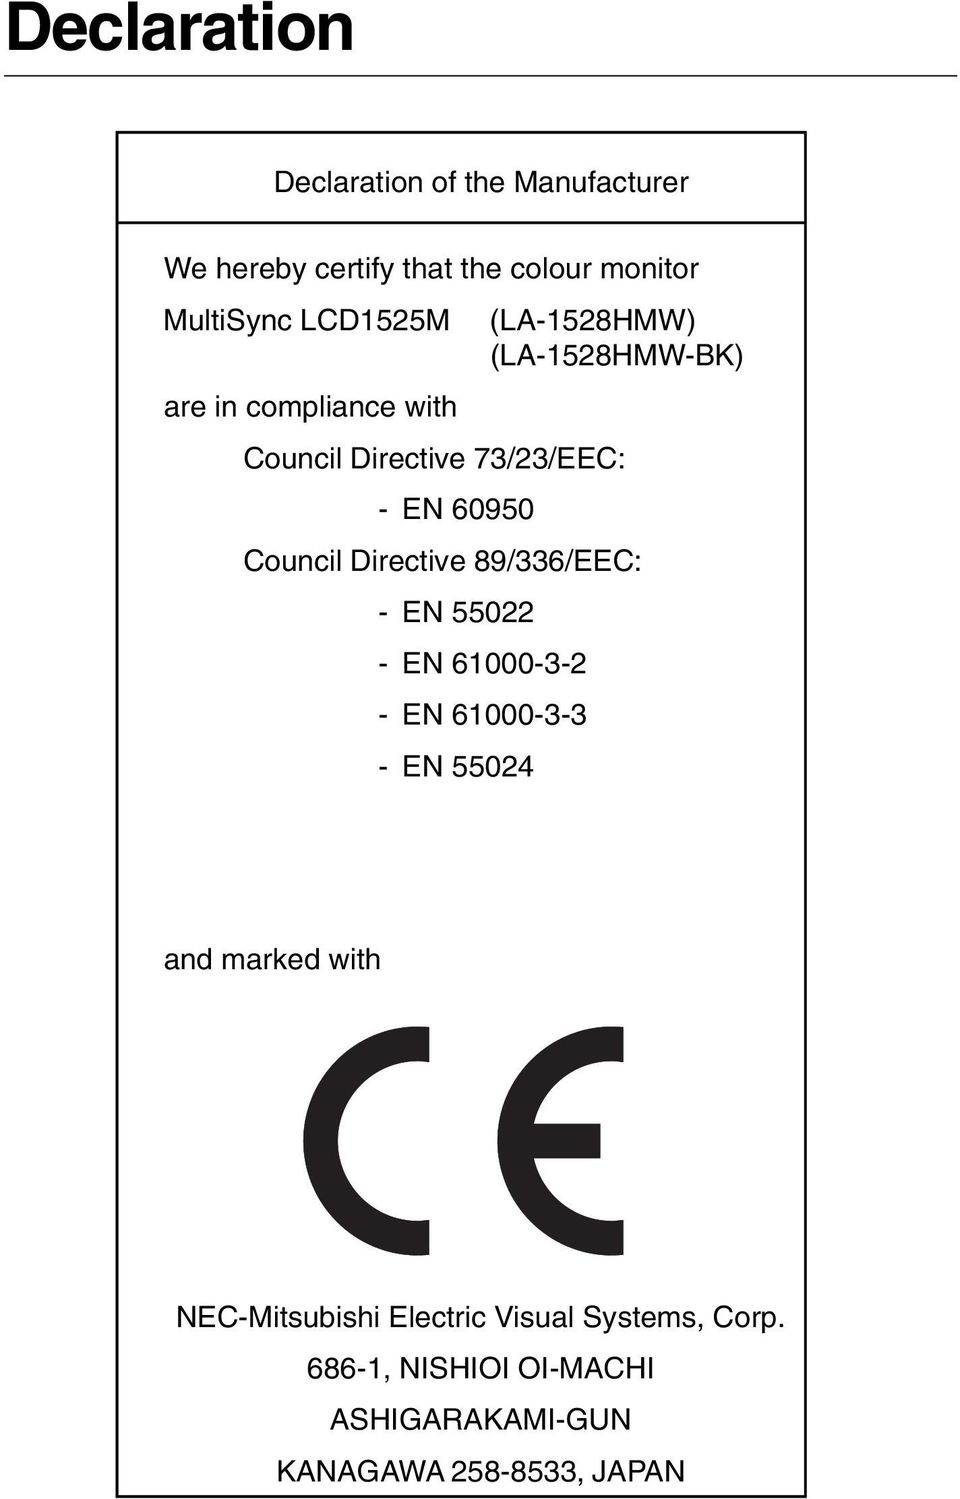 Council Directive 89/336/EEC: - EN 55022 - EN 61000-3-2 - EN 61000-3-3 - EN 55024 and marked with